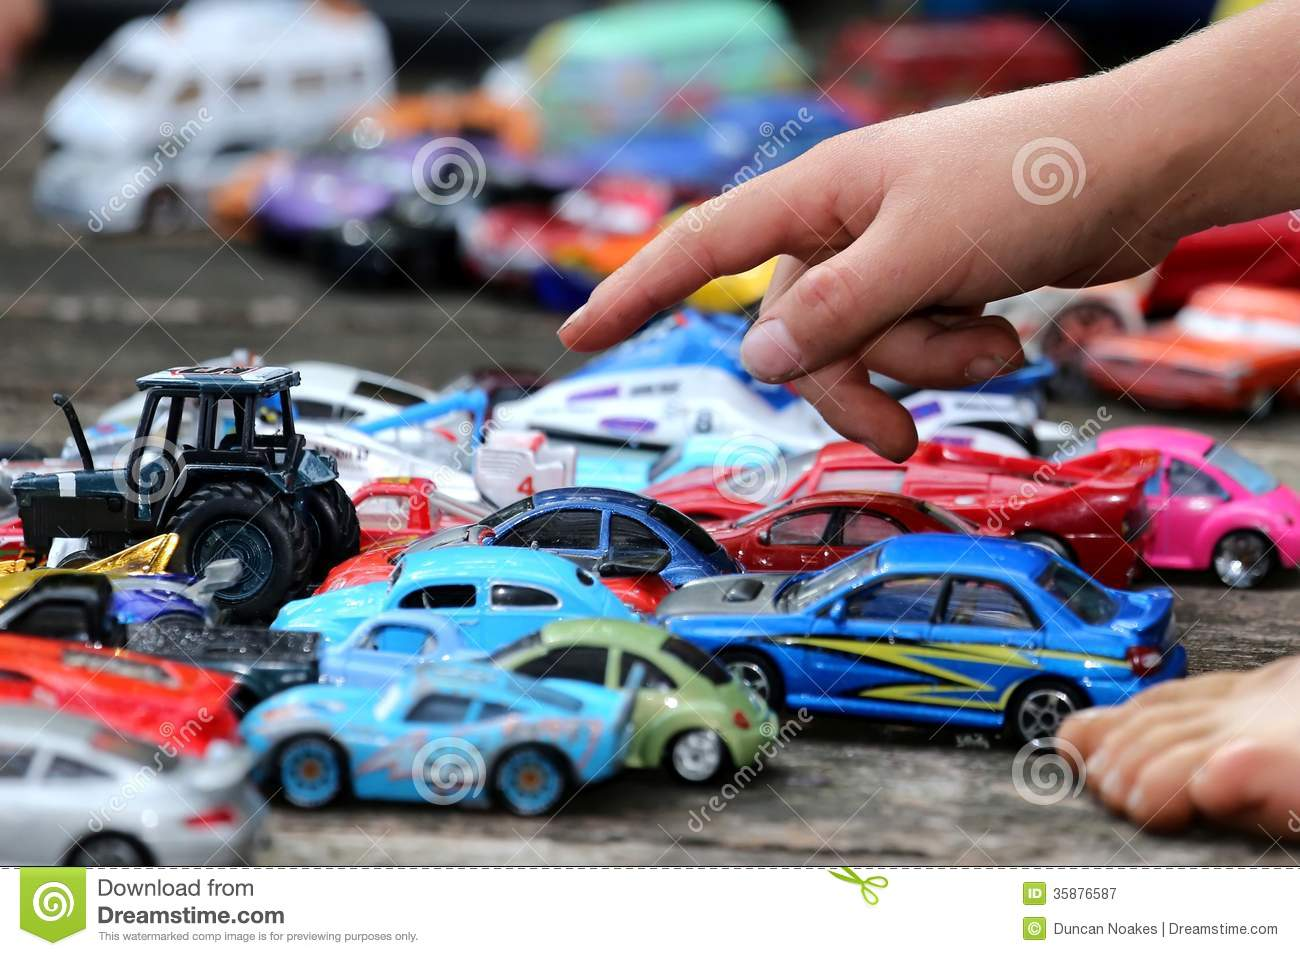 Big W Toy Cars Toy Cars Game Stock Image Image Of Child Play Outdoors